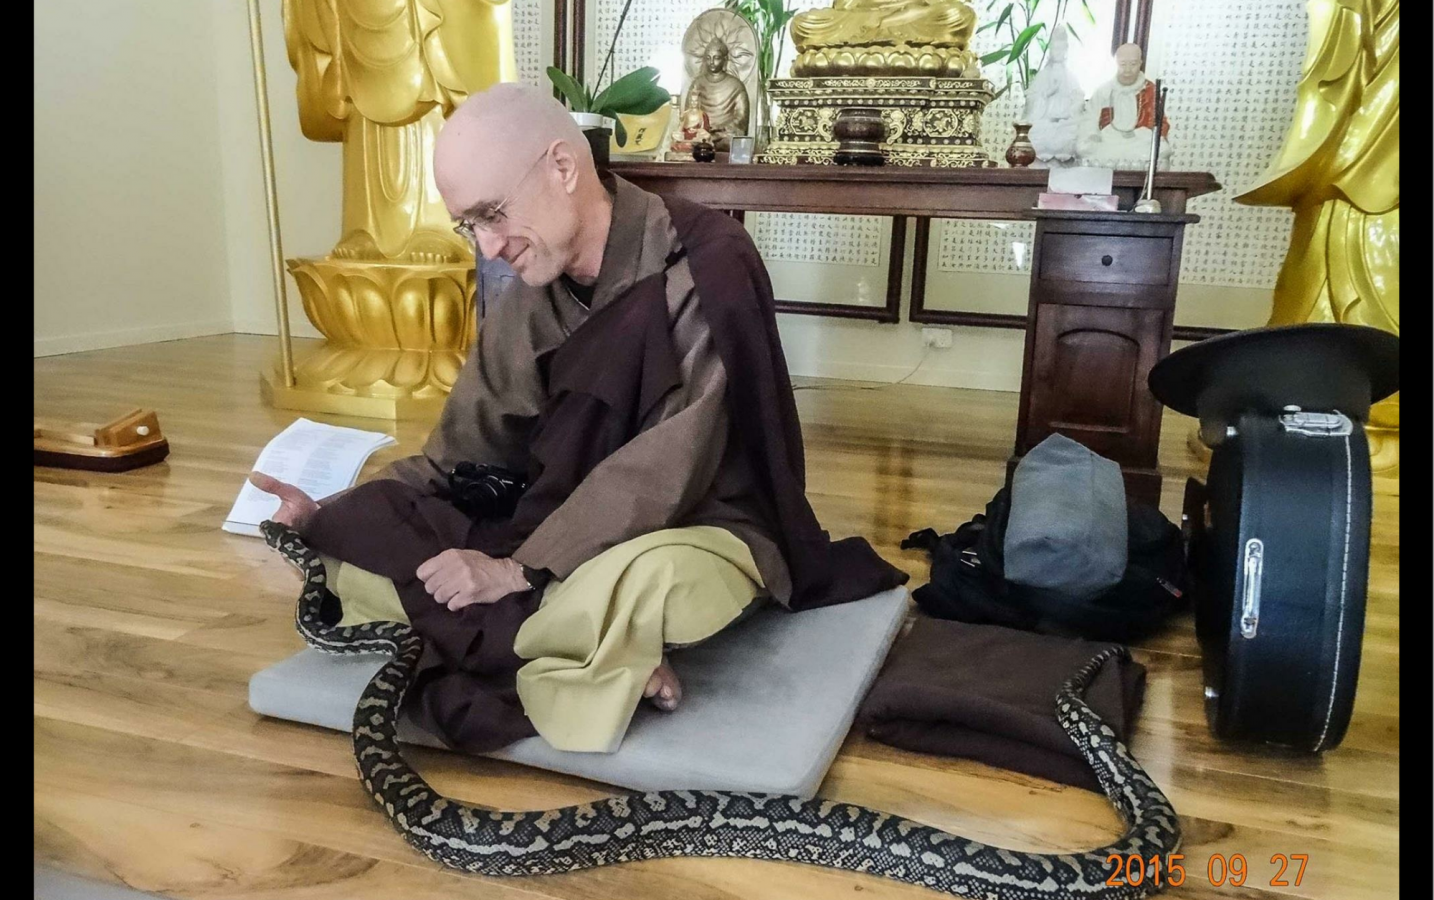 The third is a carpet python named Fractal paying a visit to a monk who has just finished teaching a class in meditation. The snake is a pet of one of the students, and is very relaxed around people. --Rev. Heng Sure